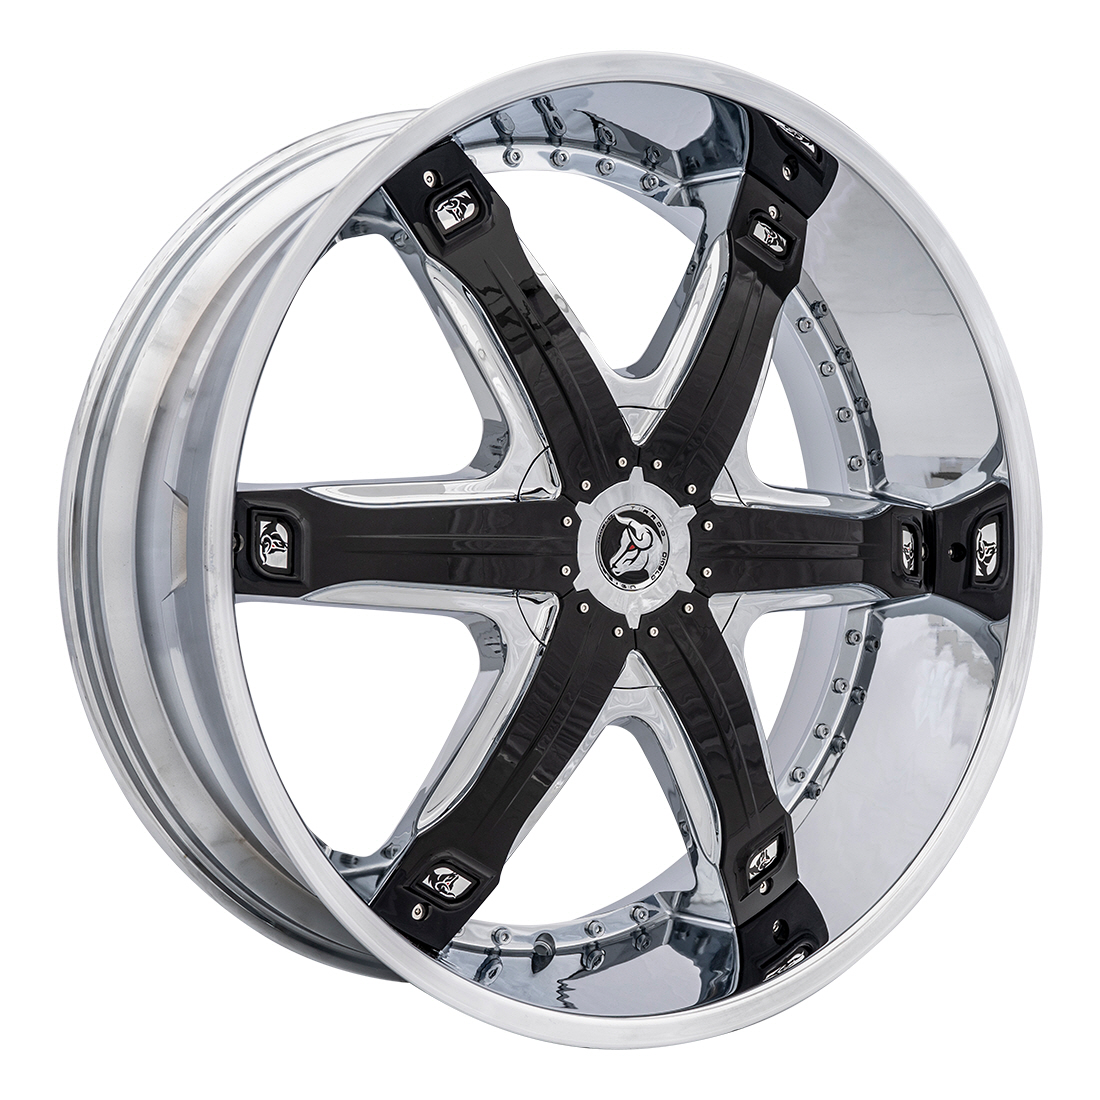 FURY  WHEELS AND RIMS PACKAGES